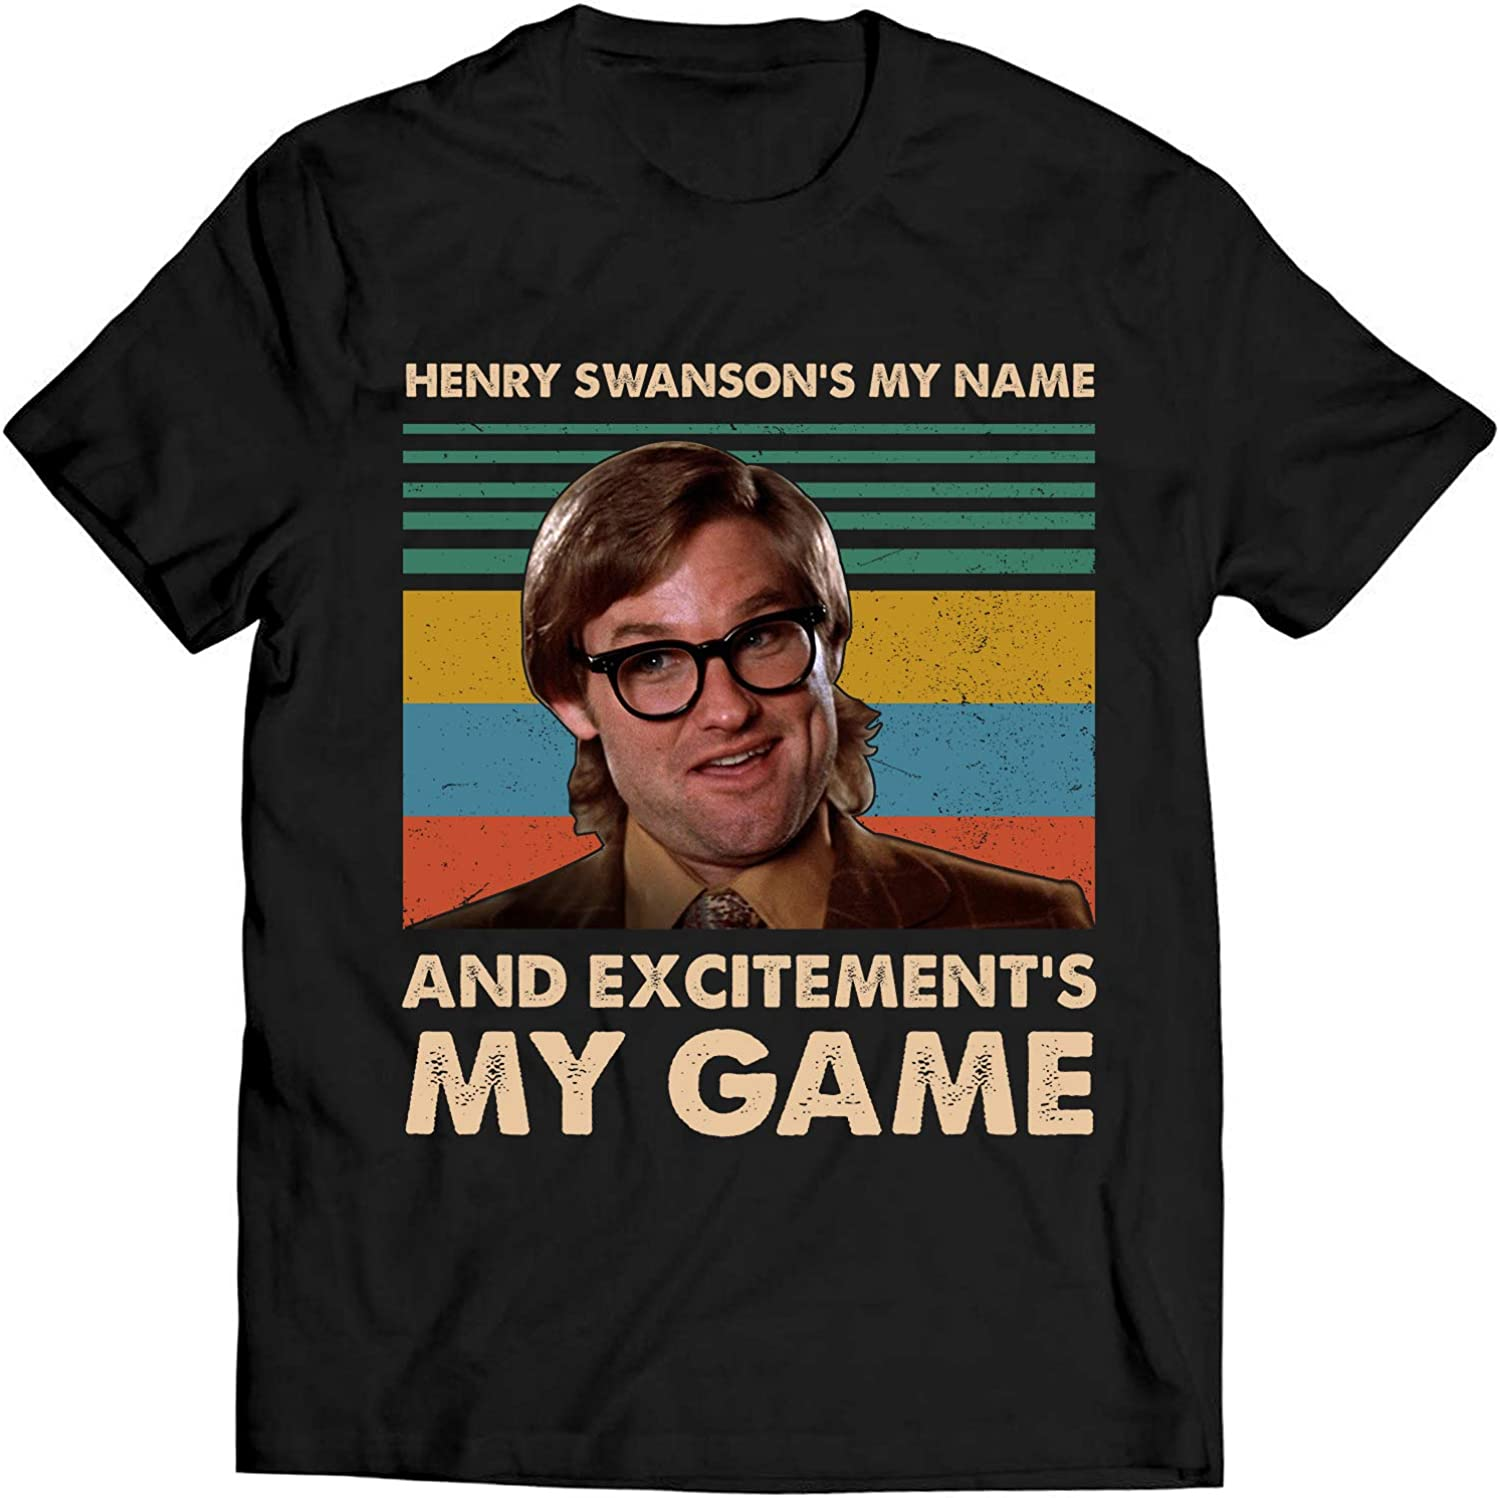 B07XY9DY82 Henry Swanson\'s My Name and Excitement\'s My Game Vintage T Shirt Big Trouble in Little China 715nTg3CMOL